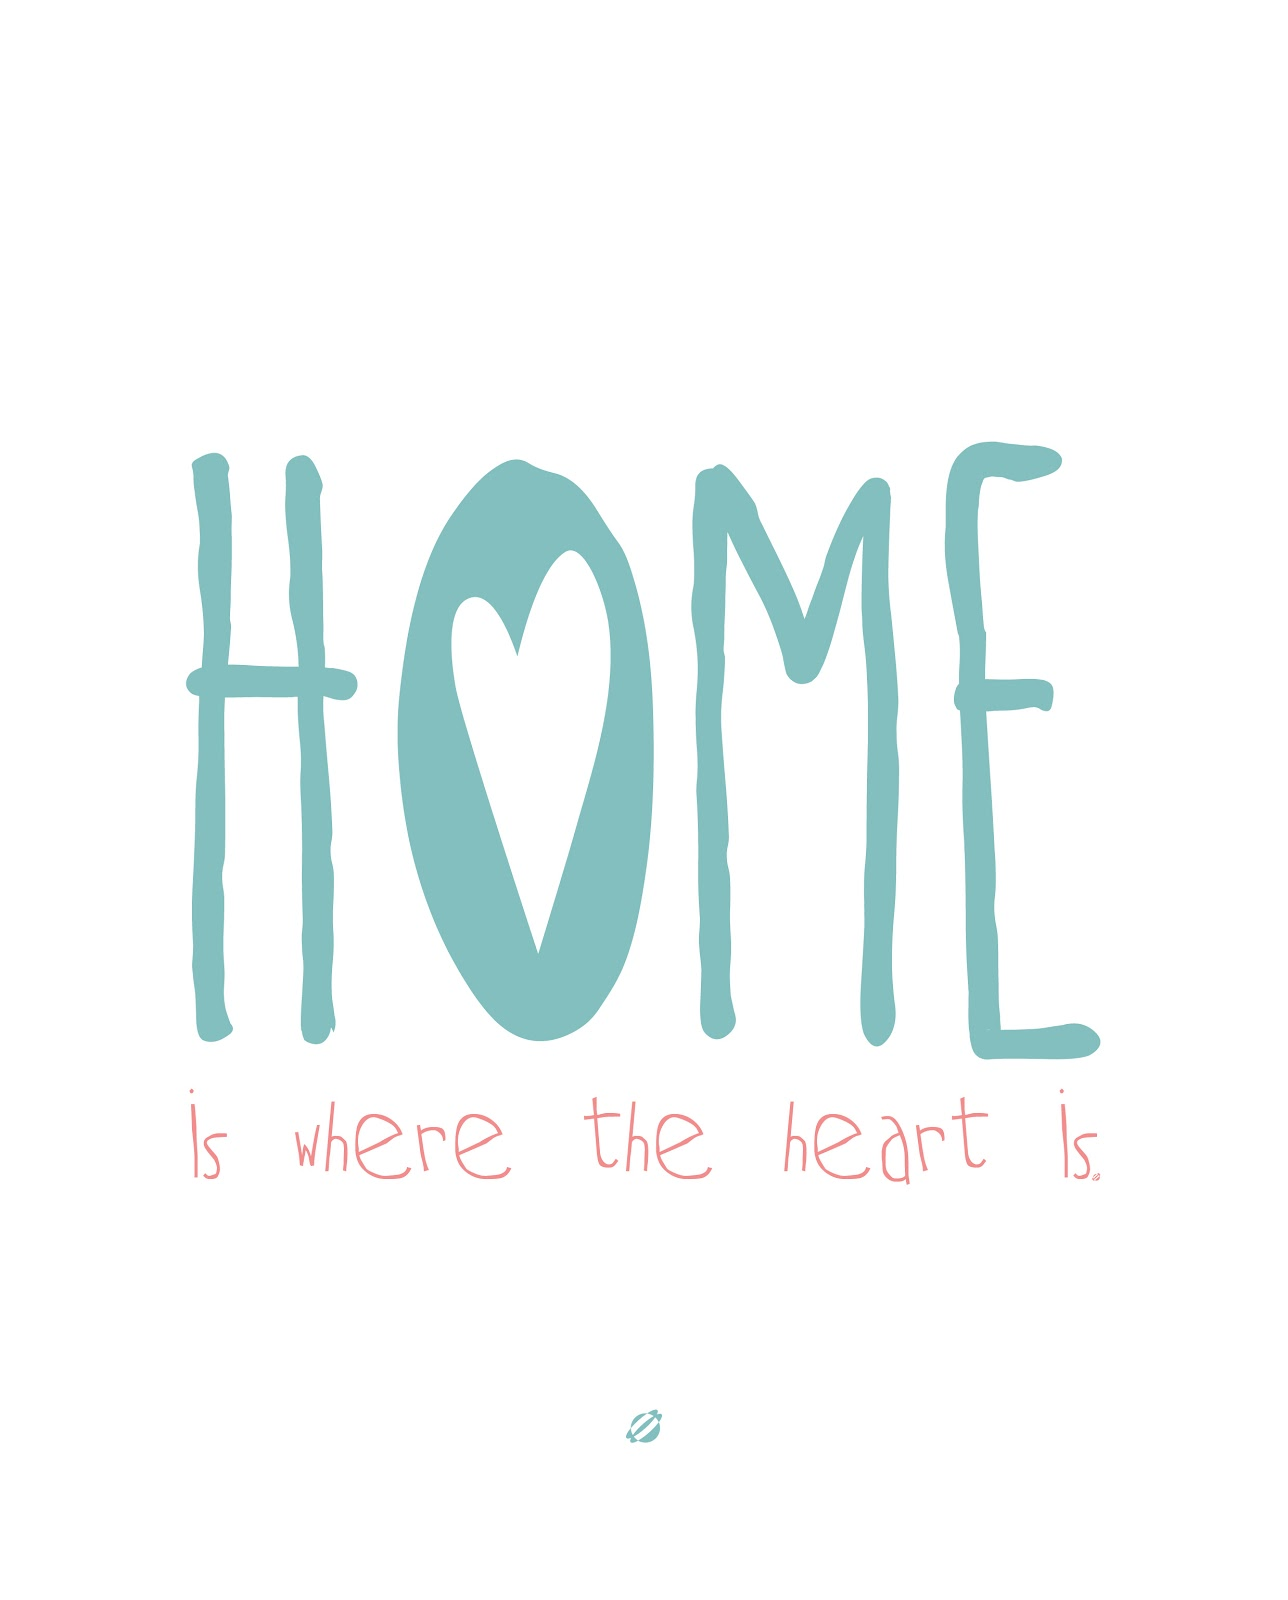 LostBumblebee ©2014 Home is where the heart is - Free Printable-  Personal Use Only.